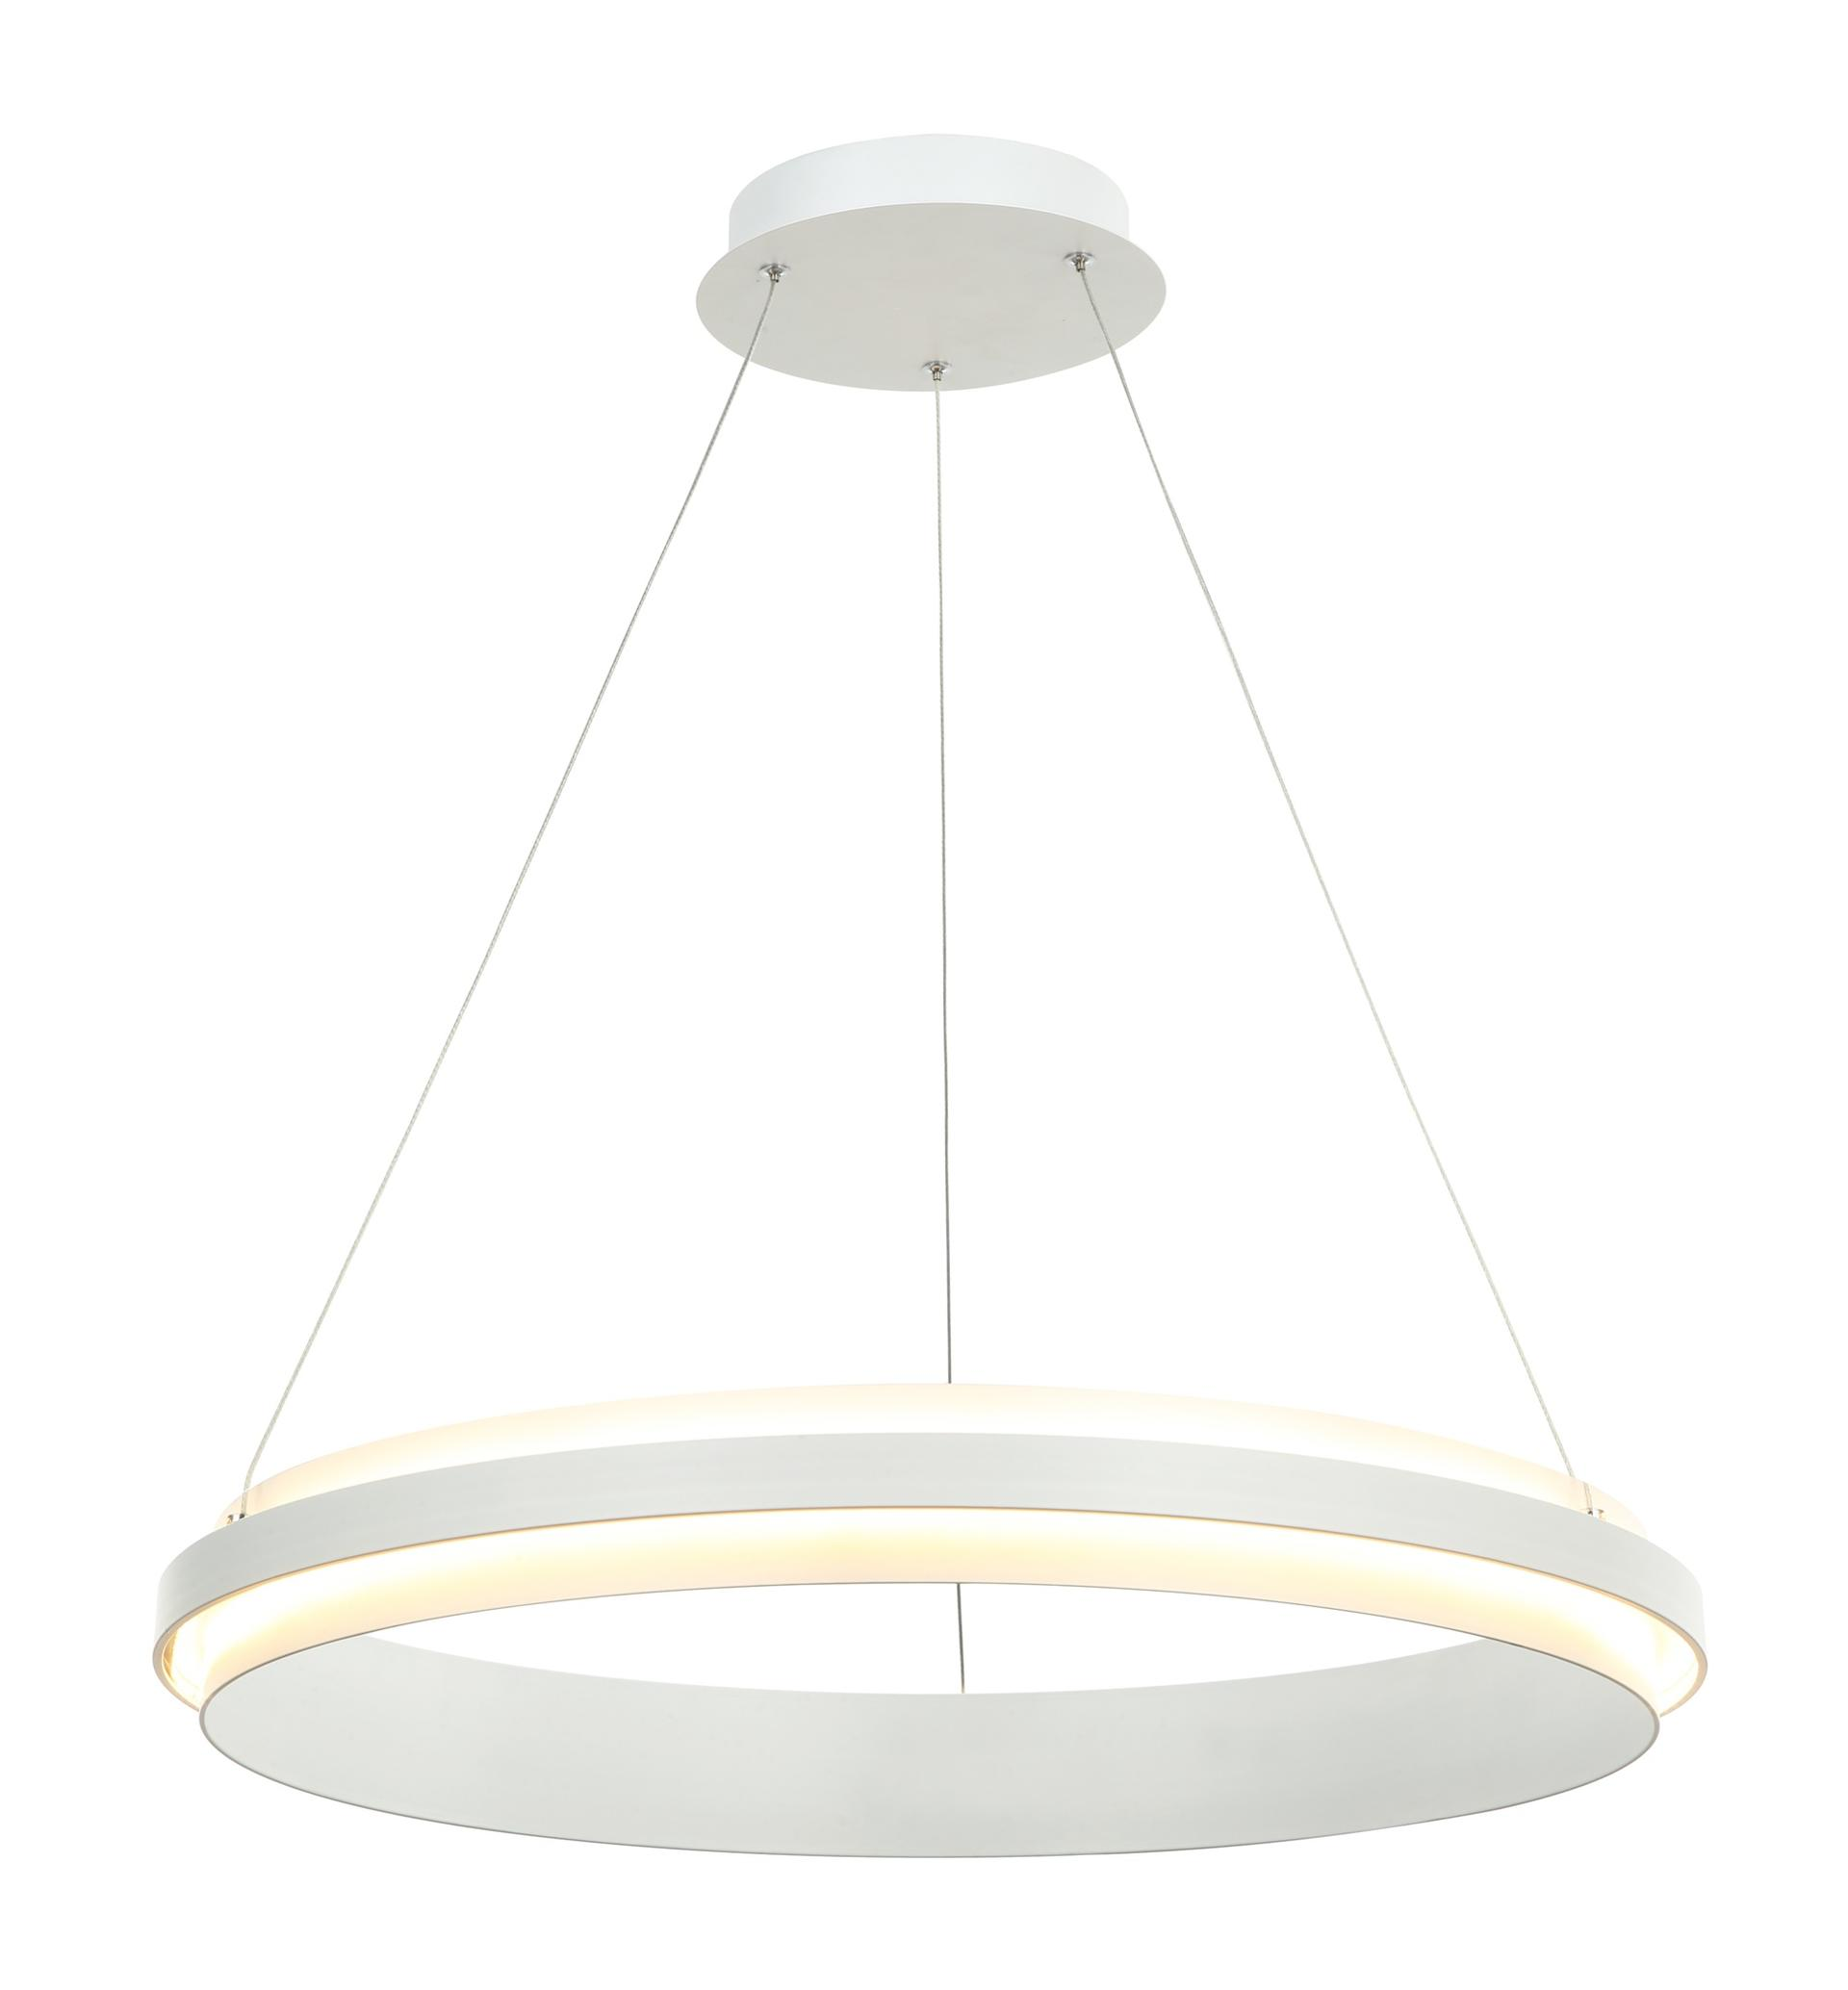 36W LED PENDANT LAMP 63813A-36W